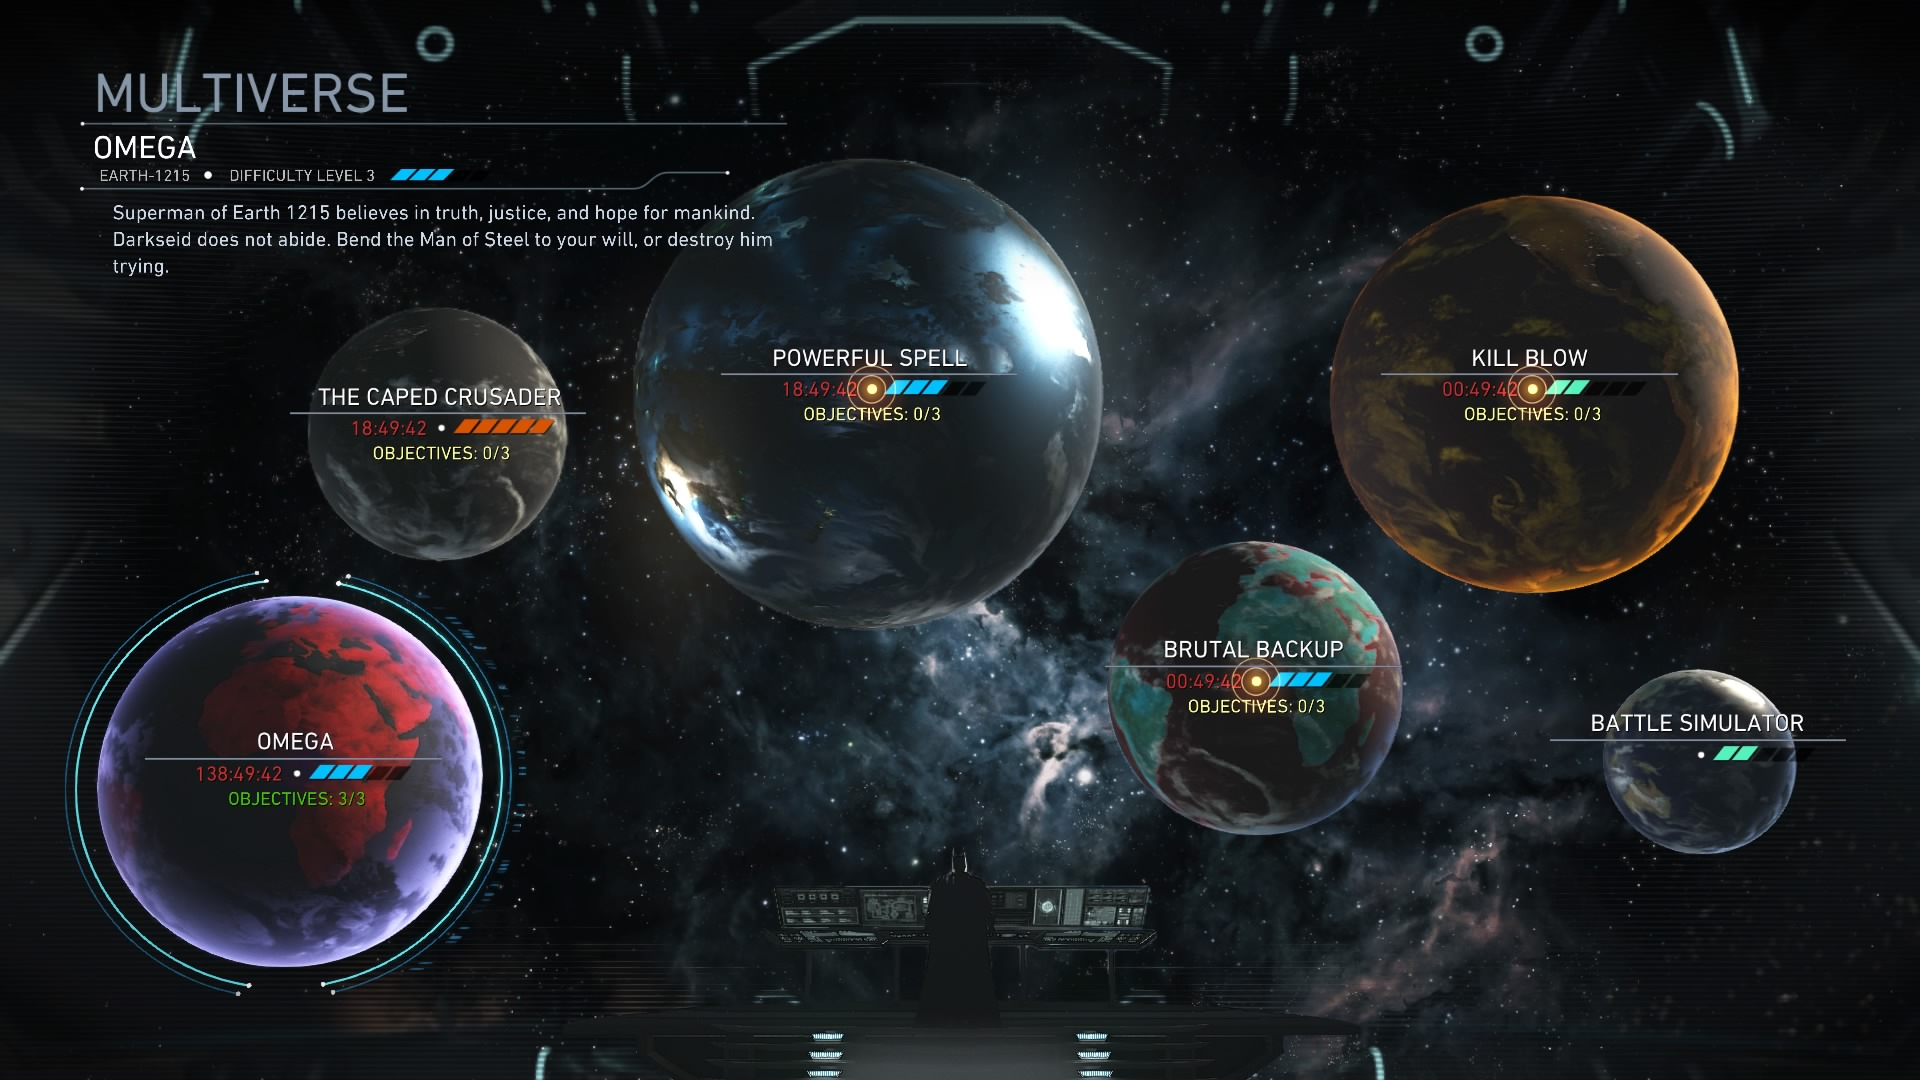 """The new """"Multiverse"""" mode allows players to hone their characters and gear to take on tough enemies in continuously refreshing situations."""